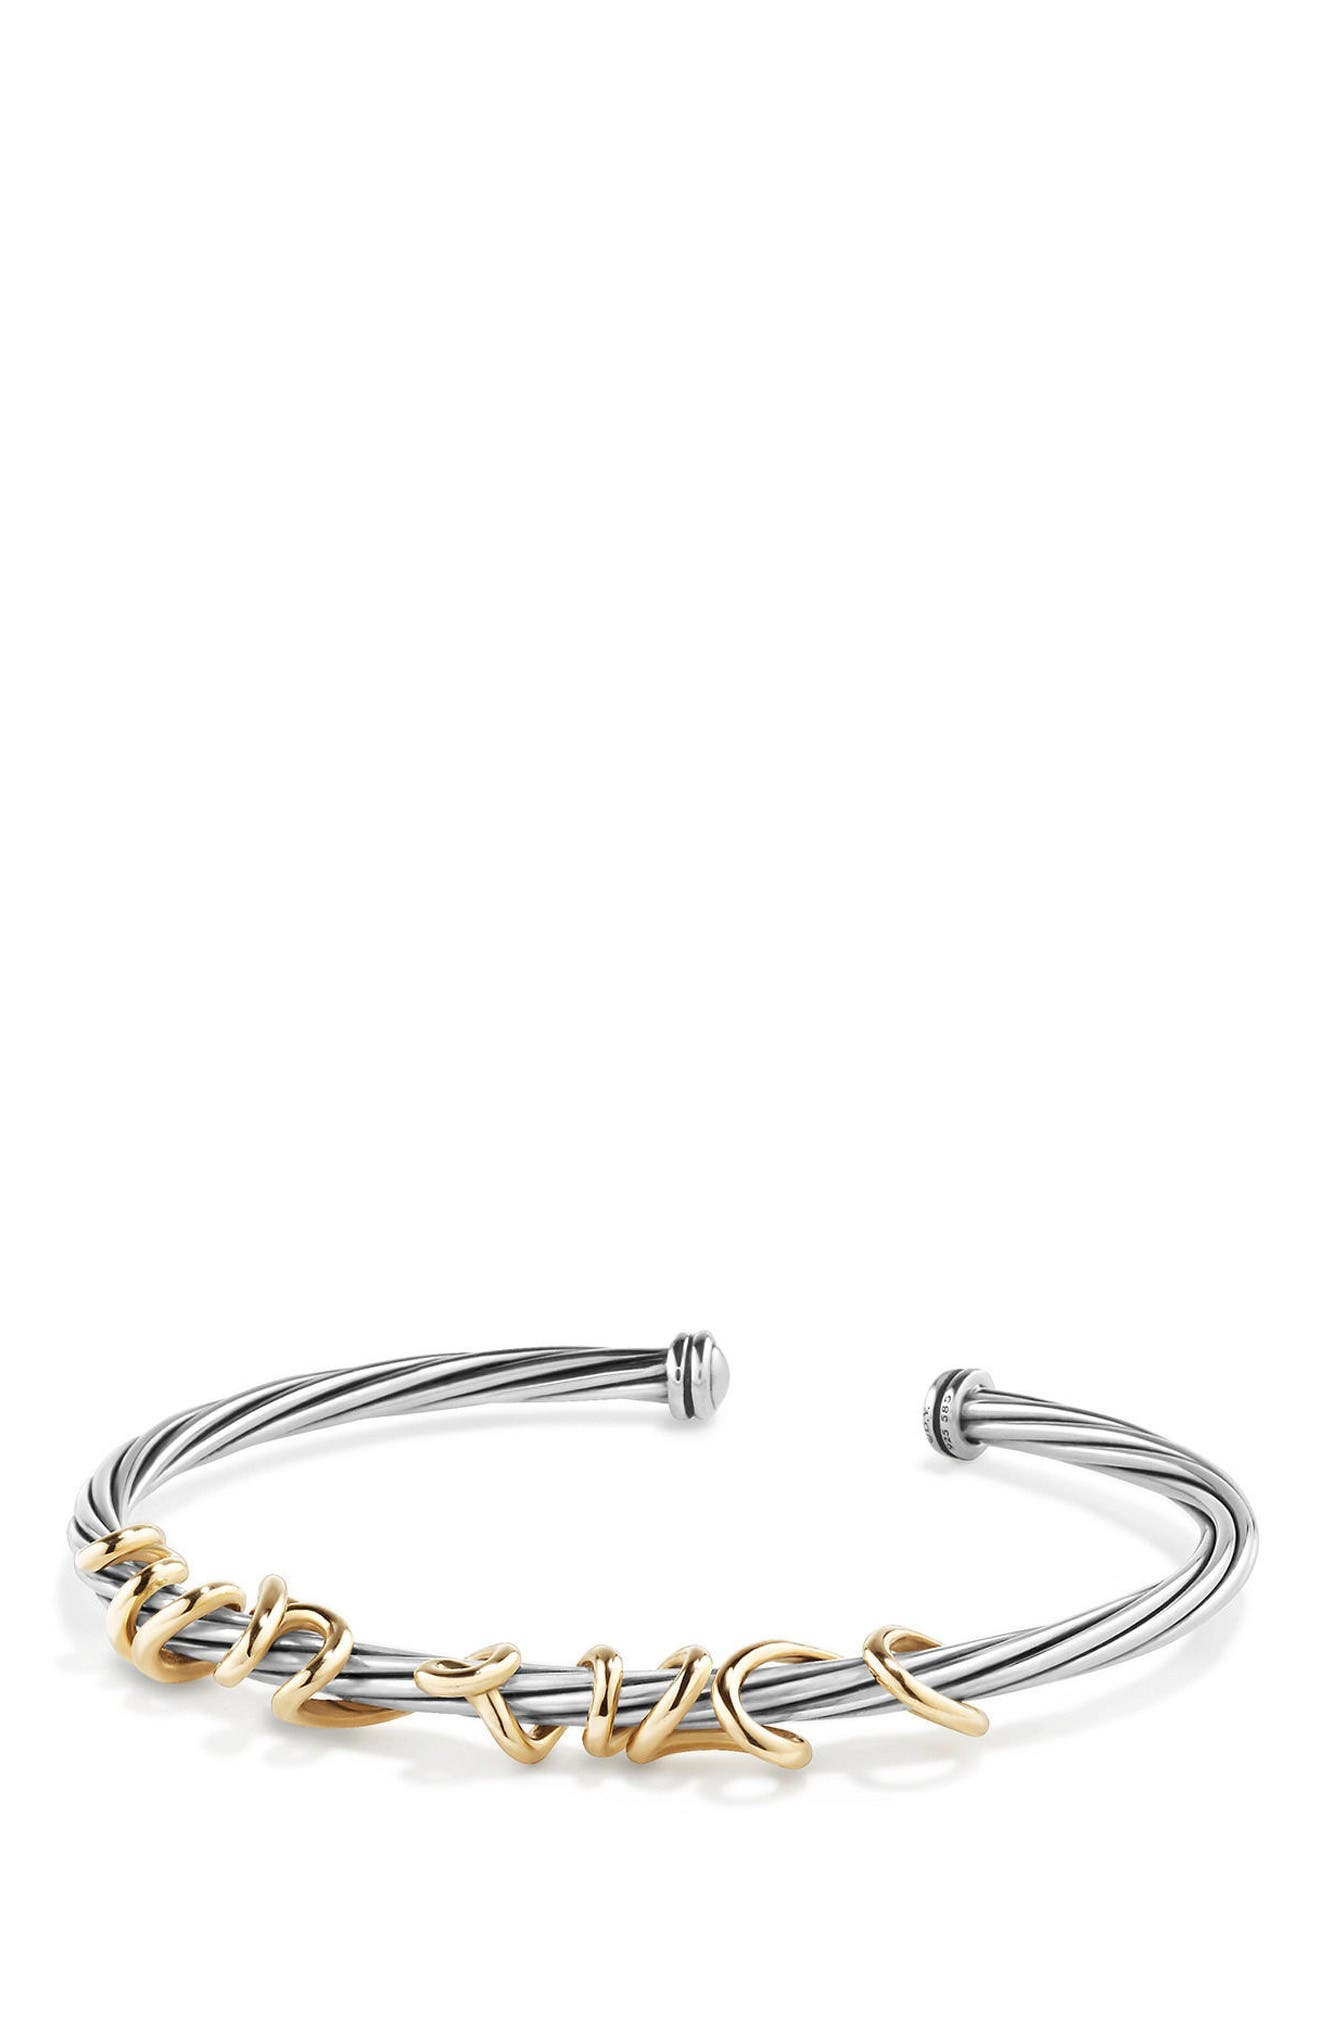 Whispers I Love You Bracelet,                             Main thumbnail 1, color,                             Silver/ Gold